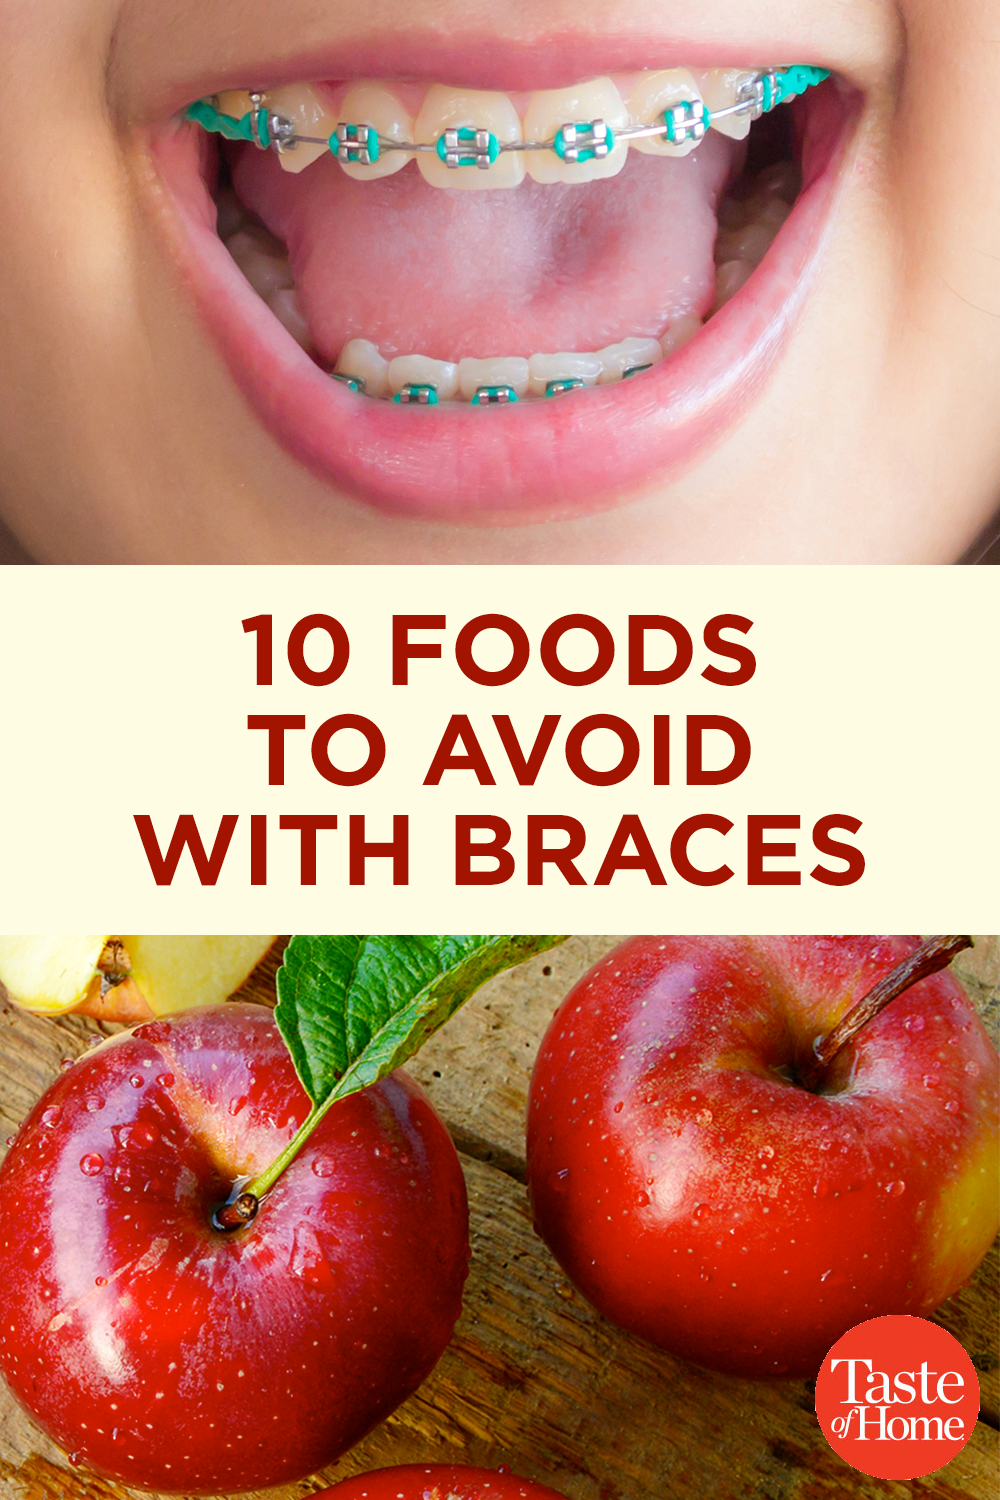 10 Foods to Avoid with Braces (With images) Soft foods